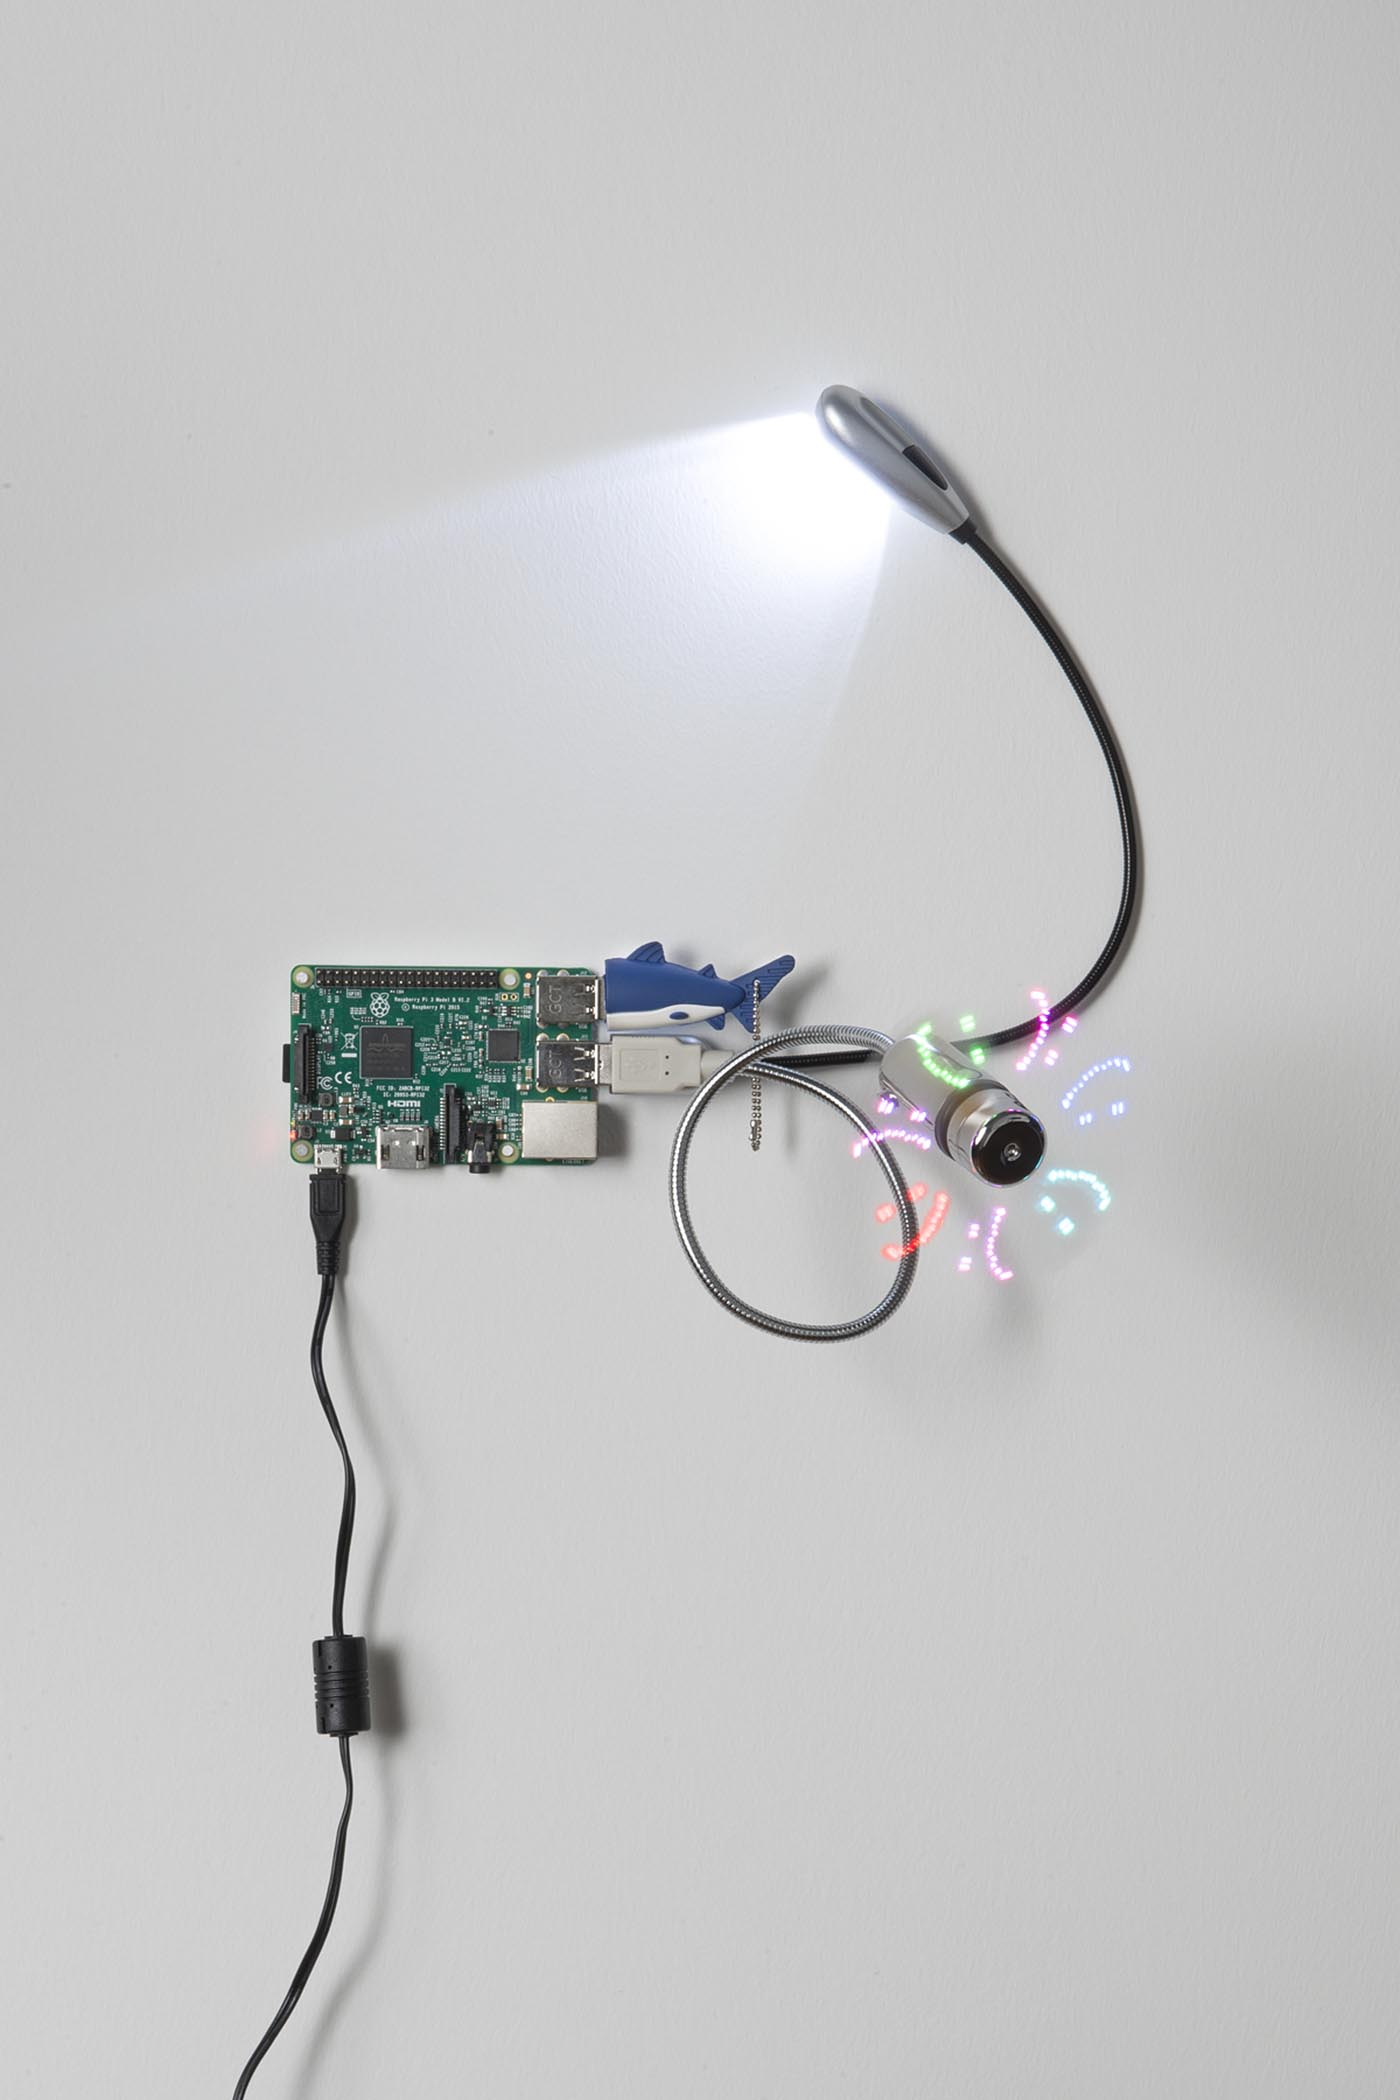 RPI: fields of environmental sensing, 2017 Raspberry pi, micro sd card, power adapter, 16Gb shark flash drive, 2 LED USB light, programmable RGB LED USB fan, 10 x 12 x 10 in Single-board microcomputers configured with miscellaneous USB peripherals.